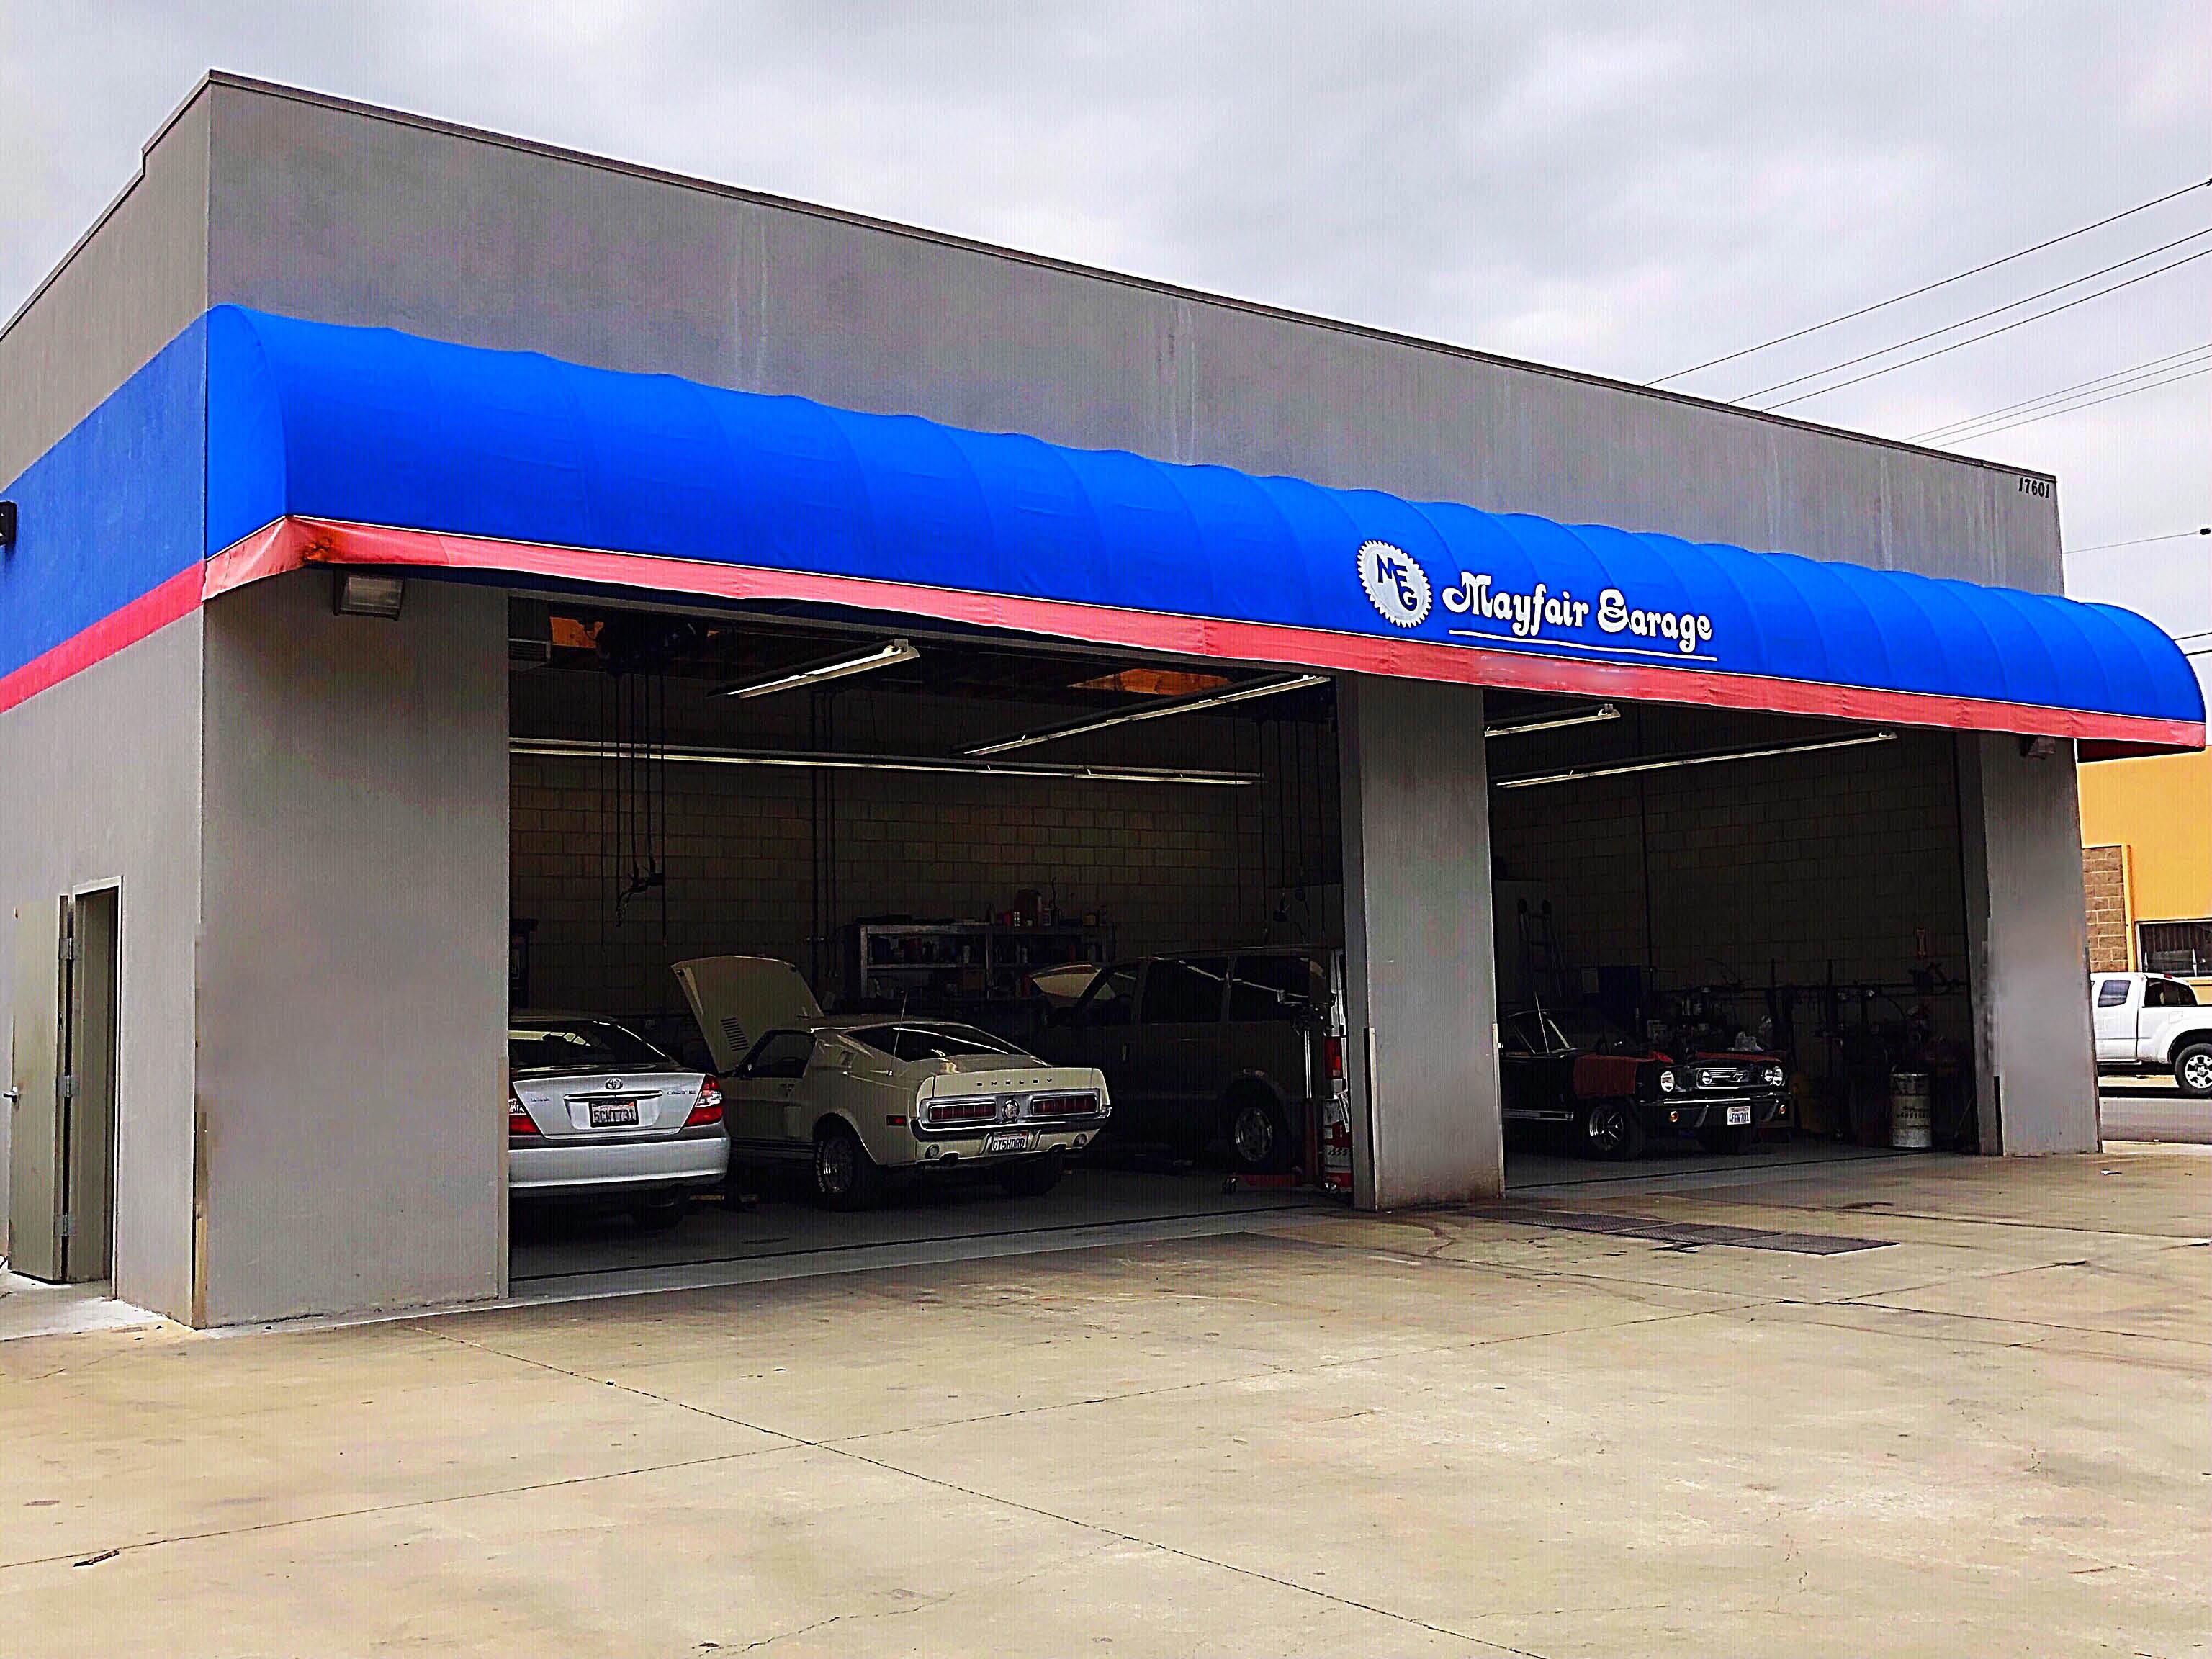 Mayfair Garage on Clark Avenue in Bellflower, CA